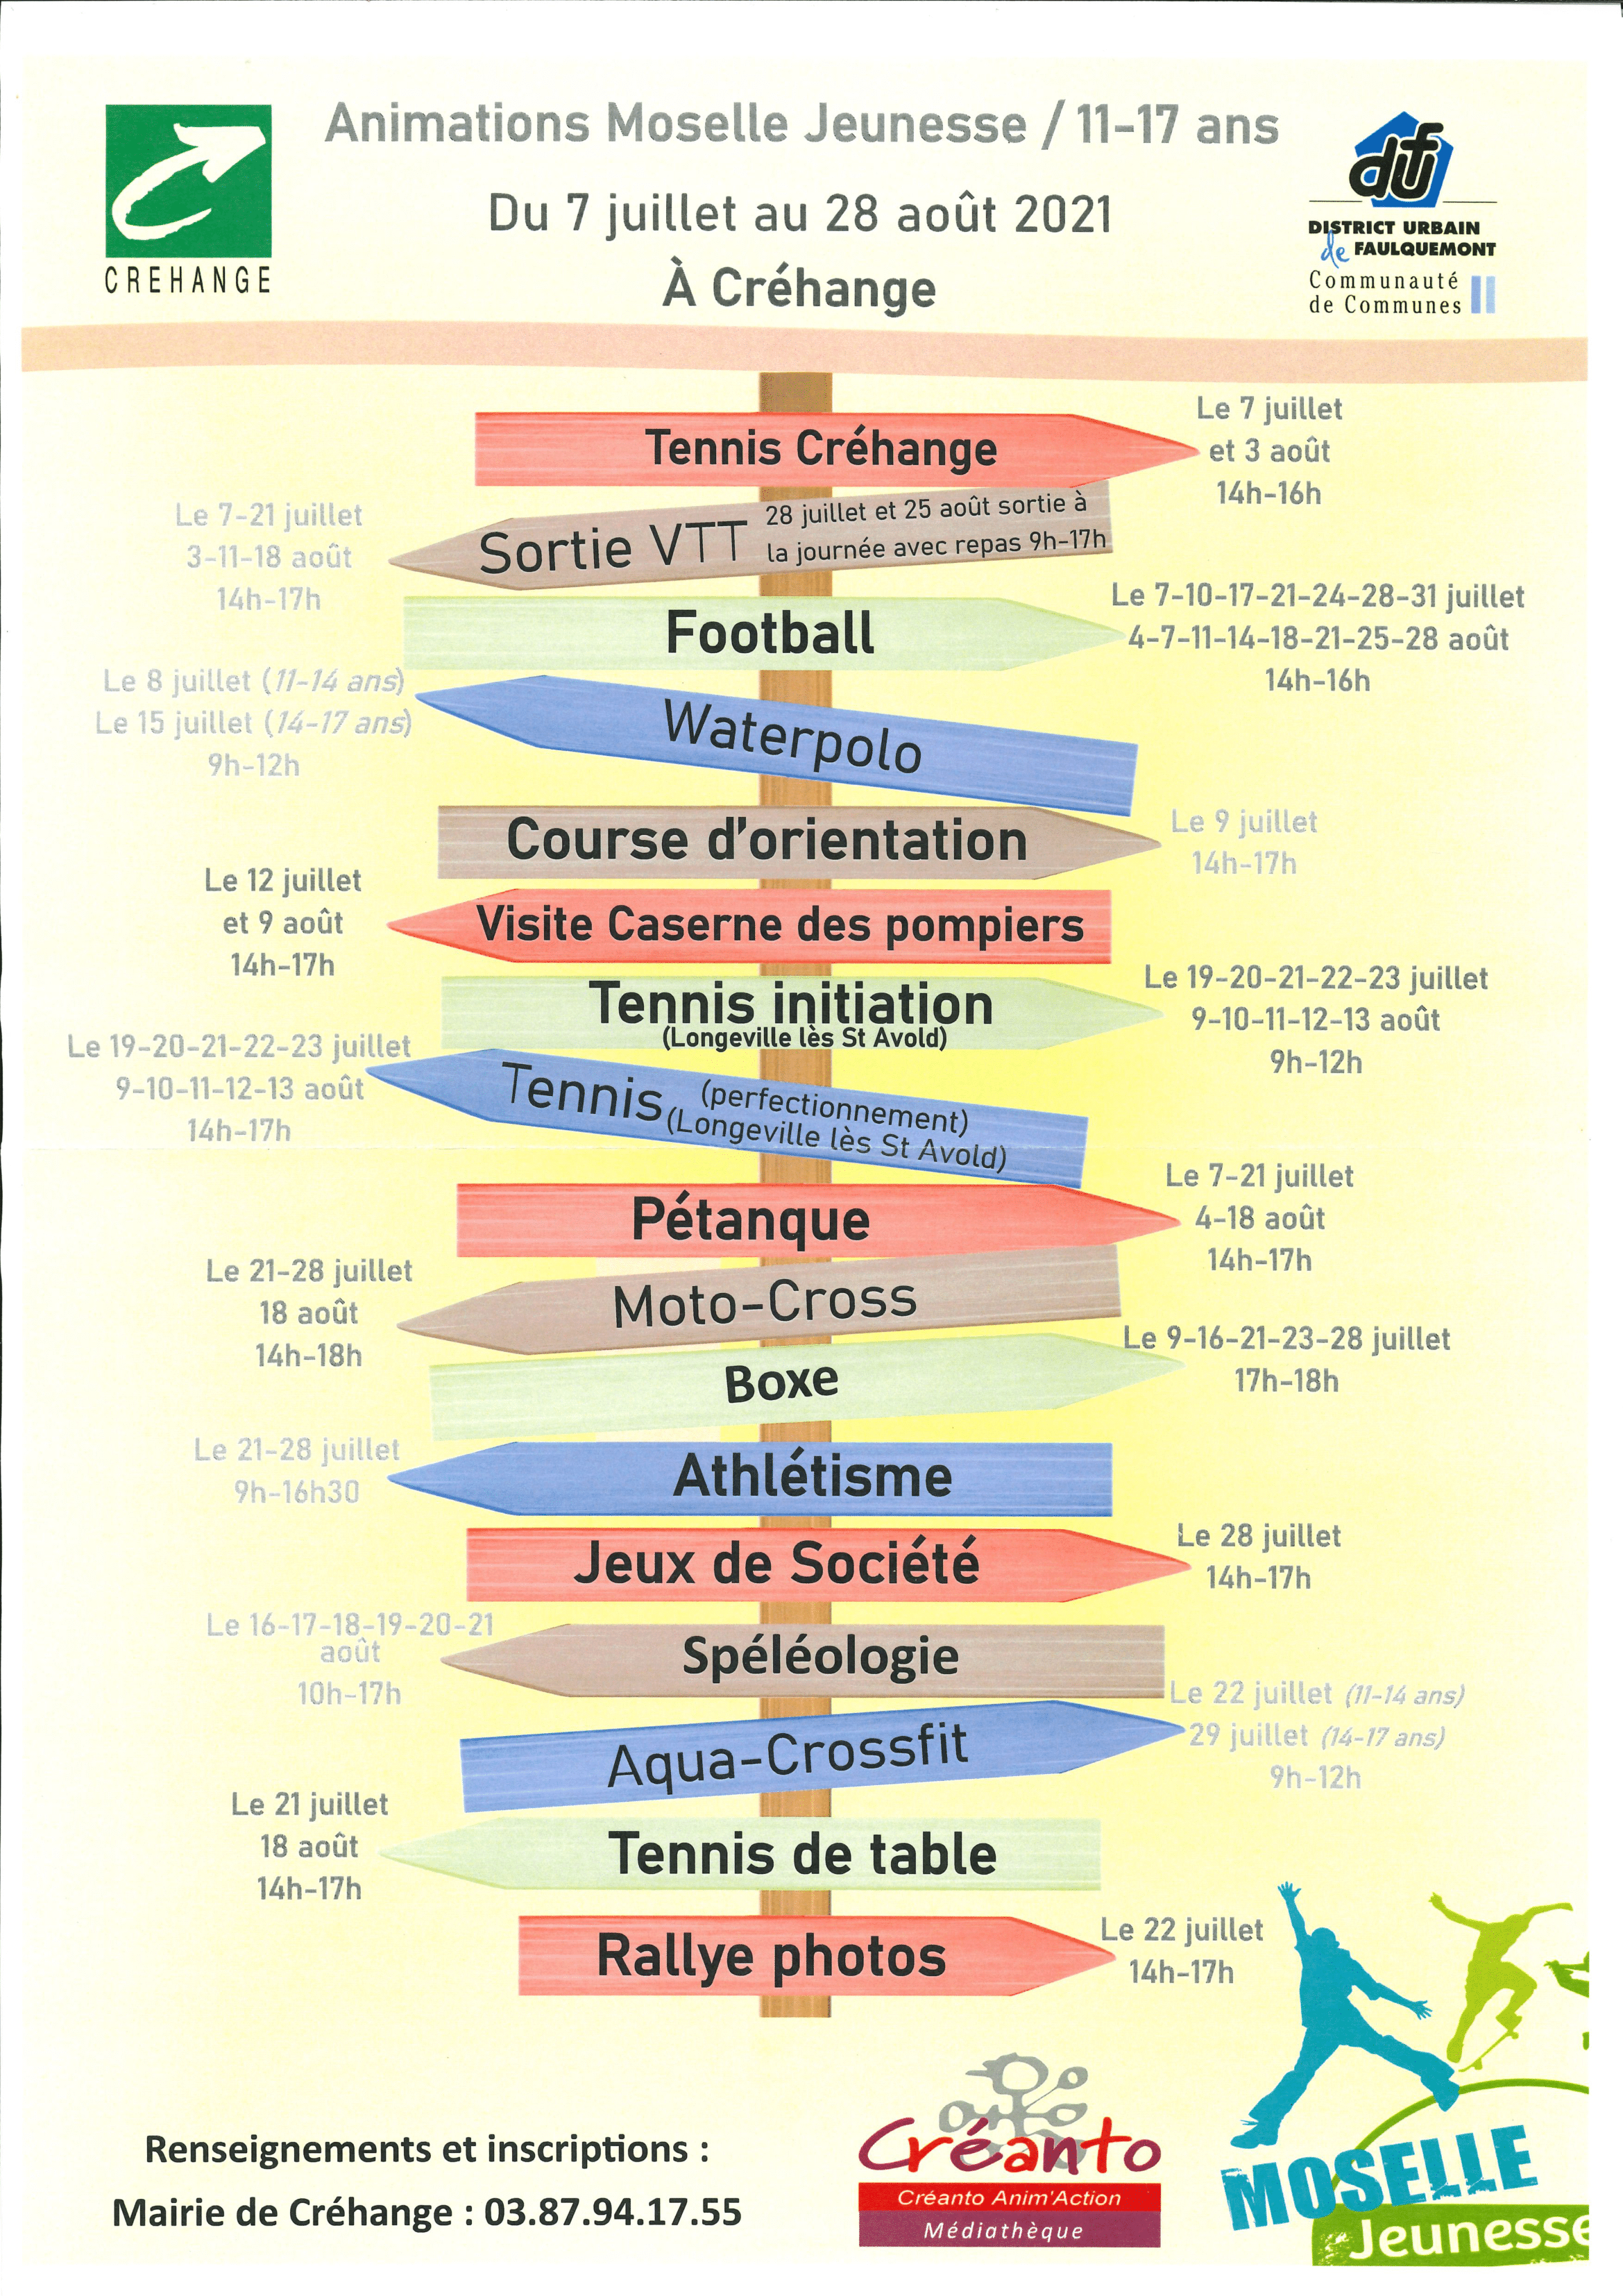 Affiche Moselle Jeunesse 2021.png